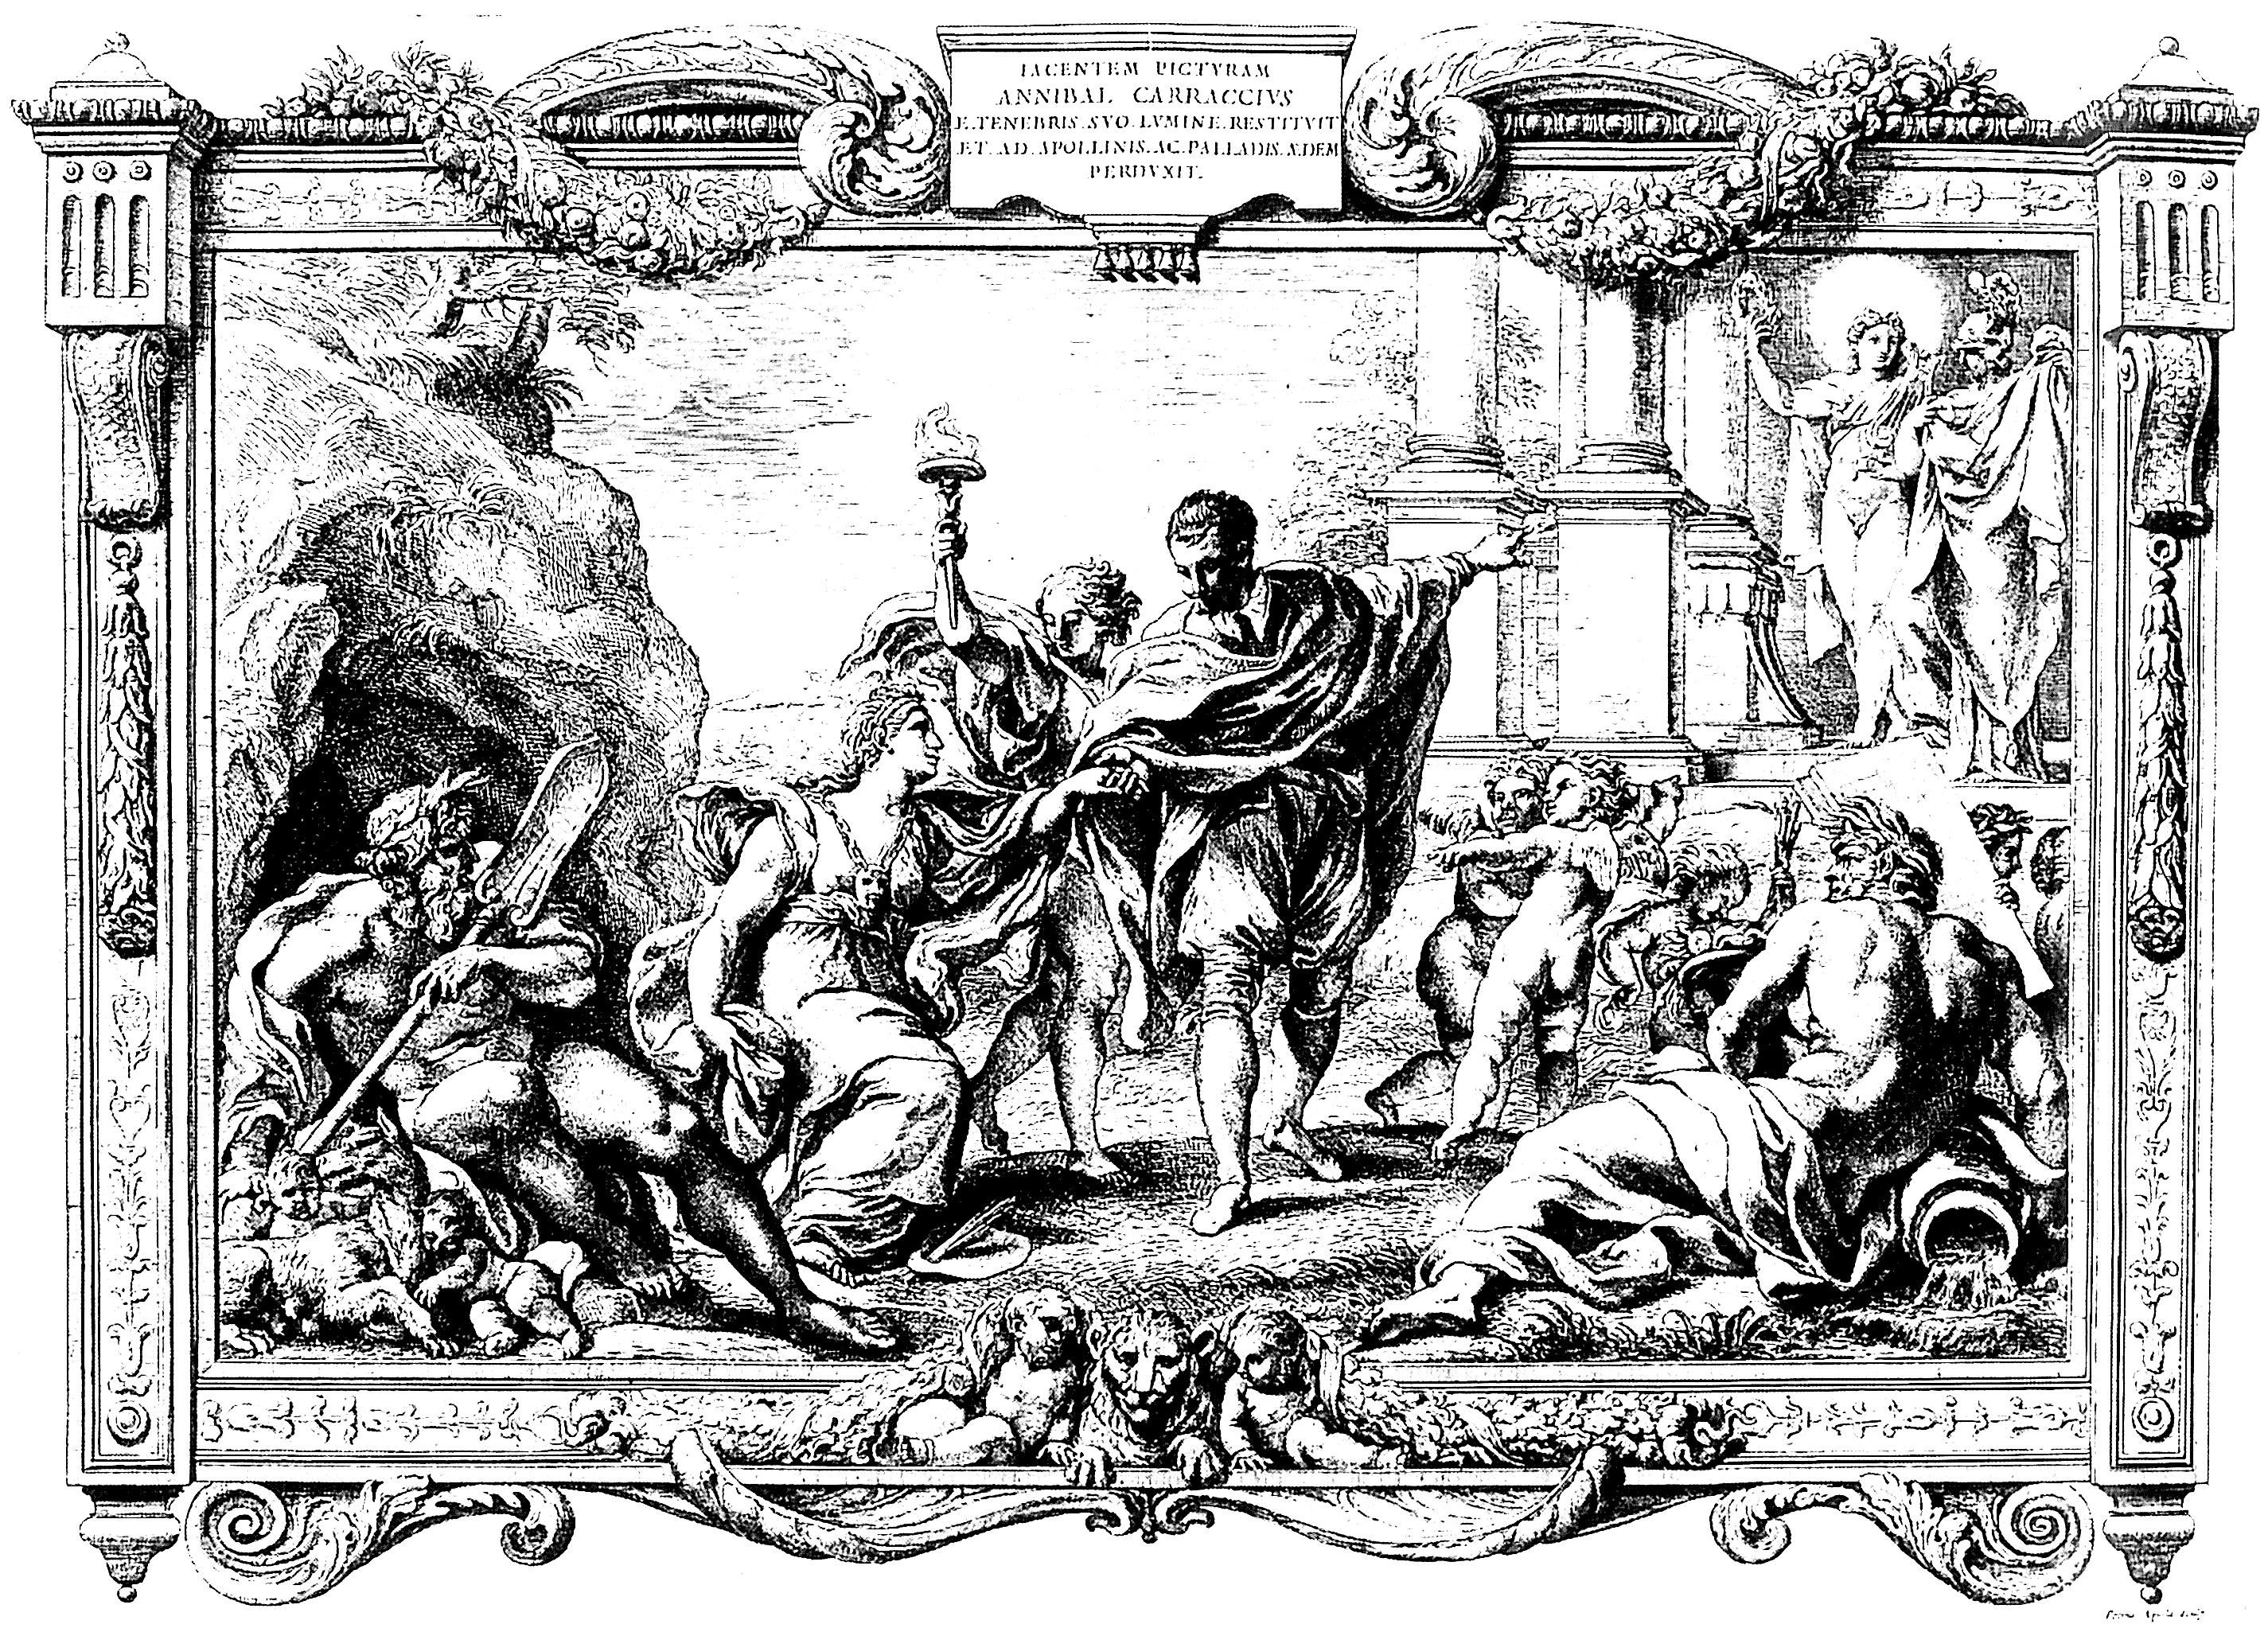 free coloring page coloring adult engraving pietro aquila allegory with